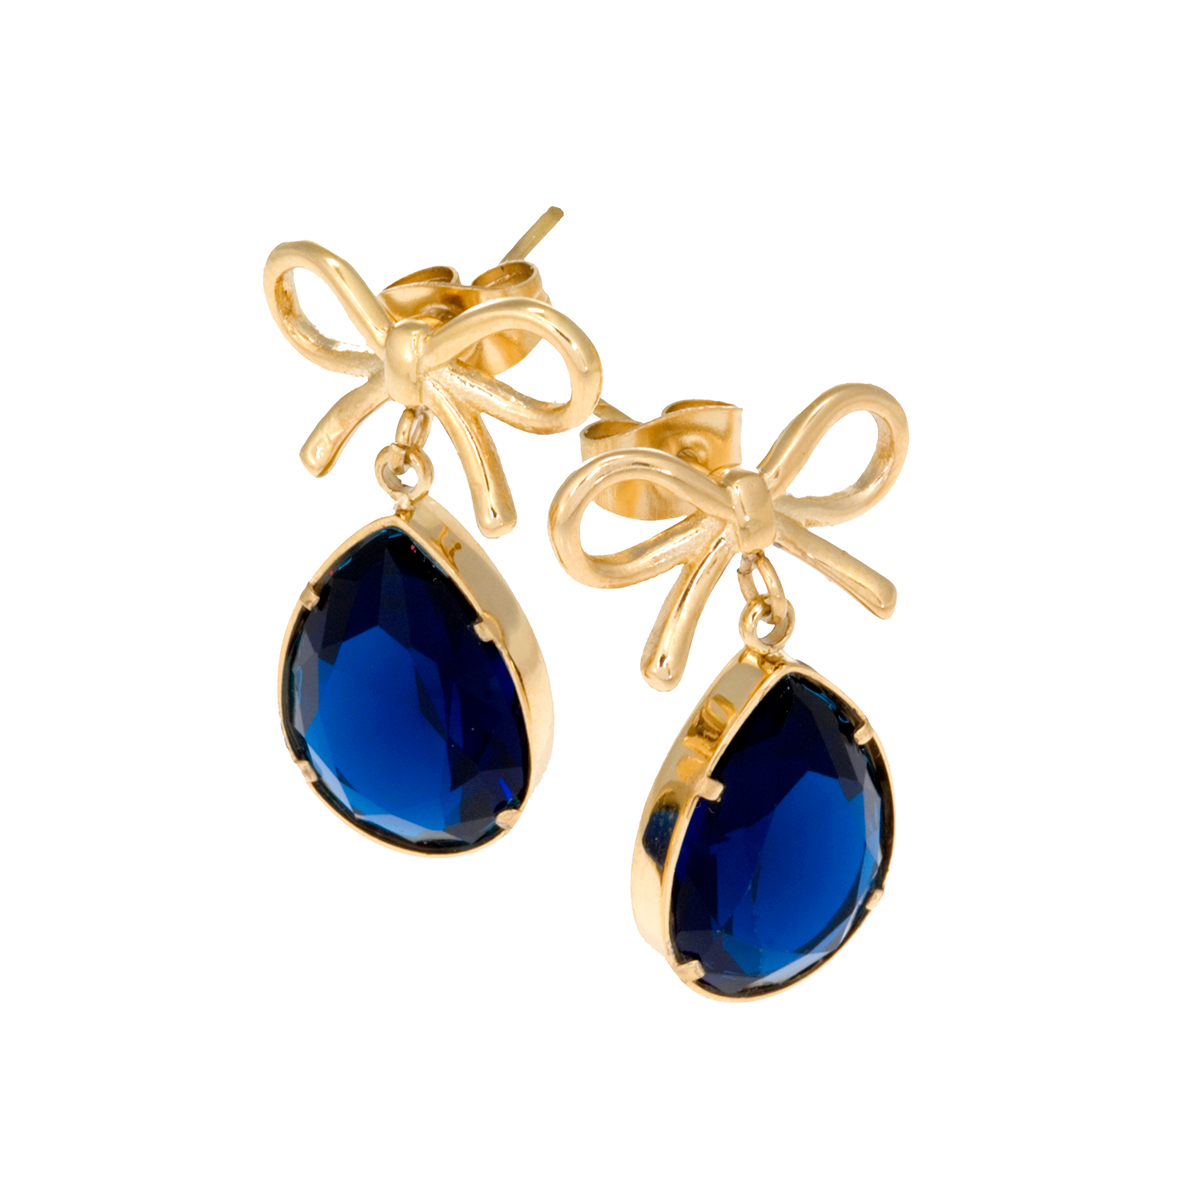 Molly-earring-gold-blue